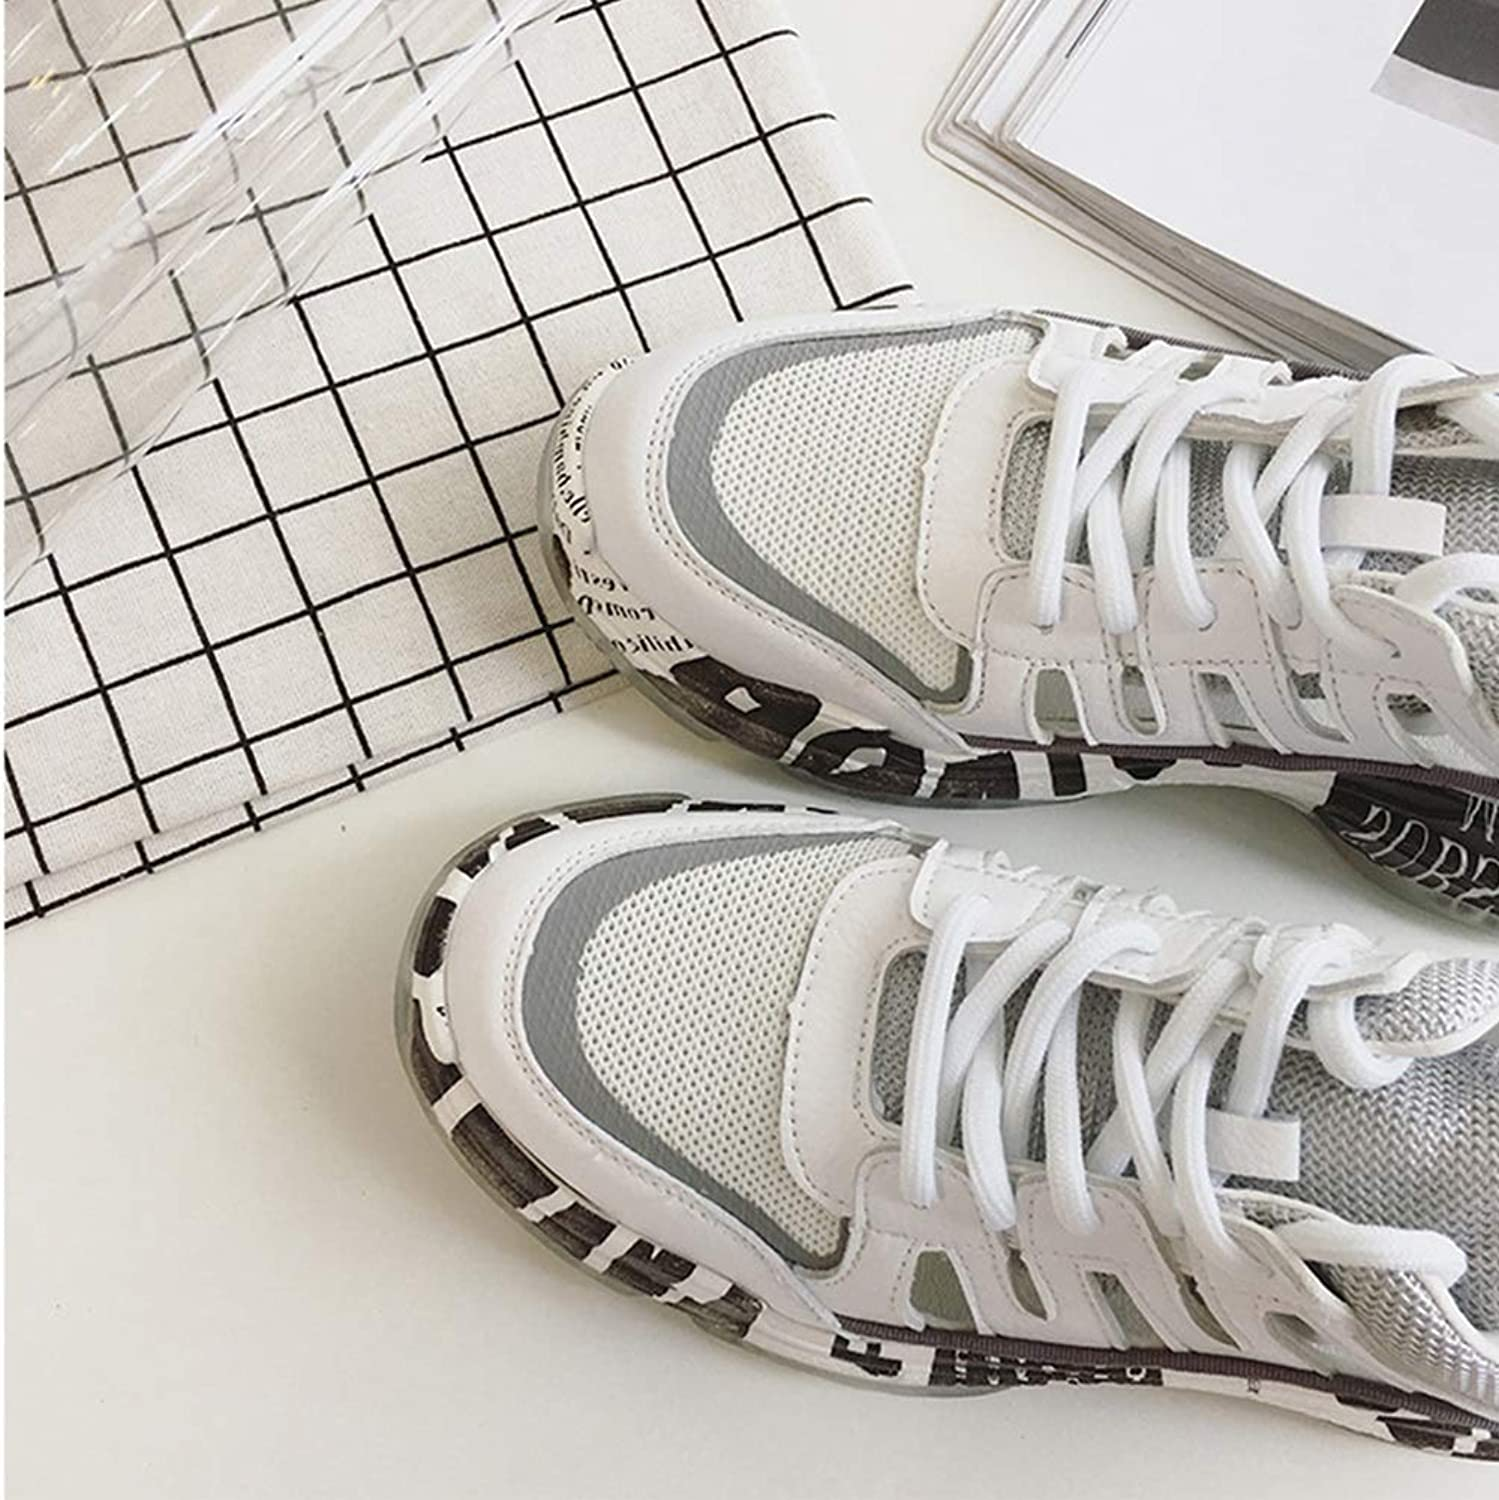 Women's shoes Increased Breathable, Anti-Static Sneaker Fashion Comfort Mesh Sneakers Breathable Impact Resistant Trainers shoes Camping Gym Park (color   A, Size   35)